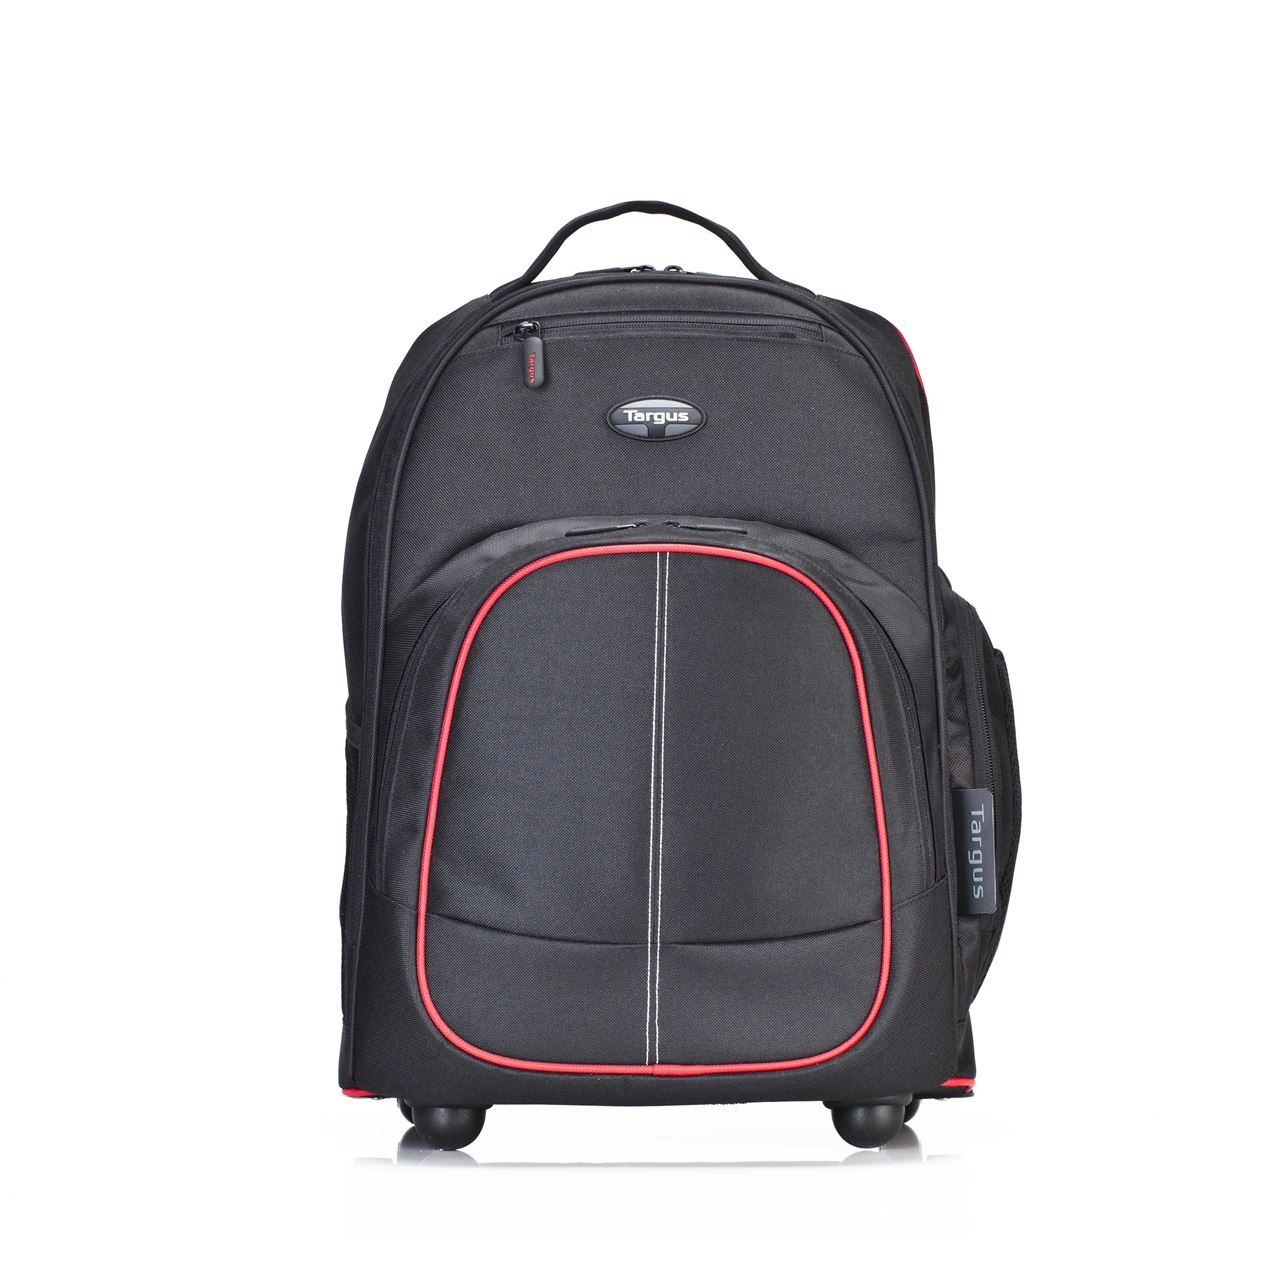 "16"" Compact Rolling Backpack - TSB75001US - Black/Red Accent ..."